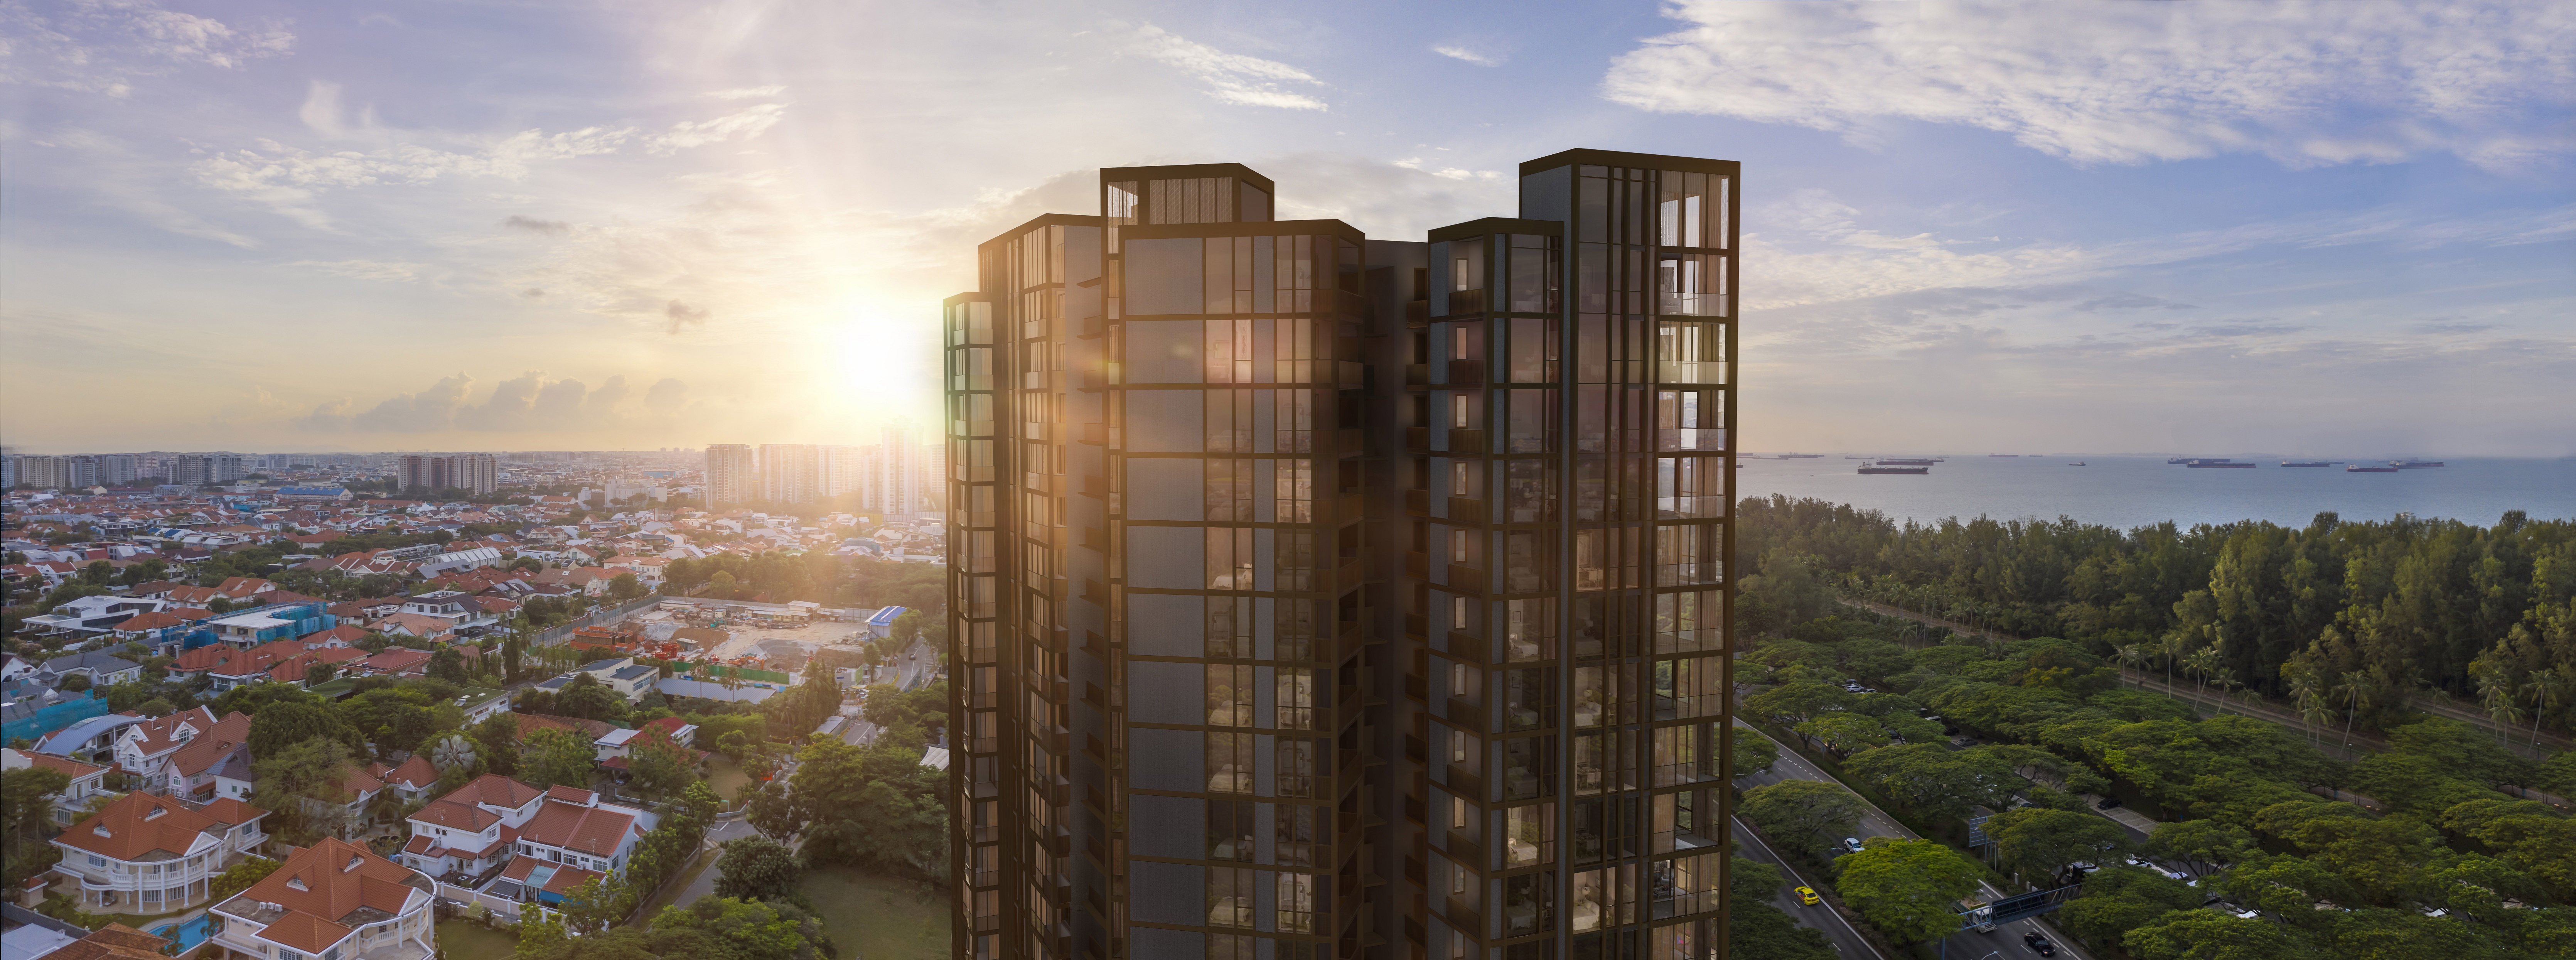 MEYER MANSION - The freehold Meyer Mansion comprises 200 units in a 25-storey residential tower (Credit: GuocoLand) - EDGEPROP SINGAPORE